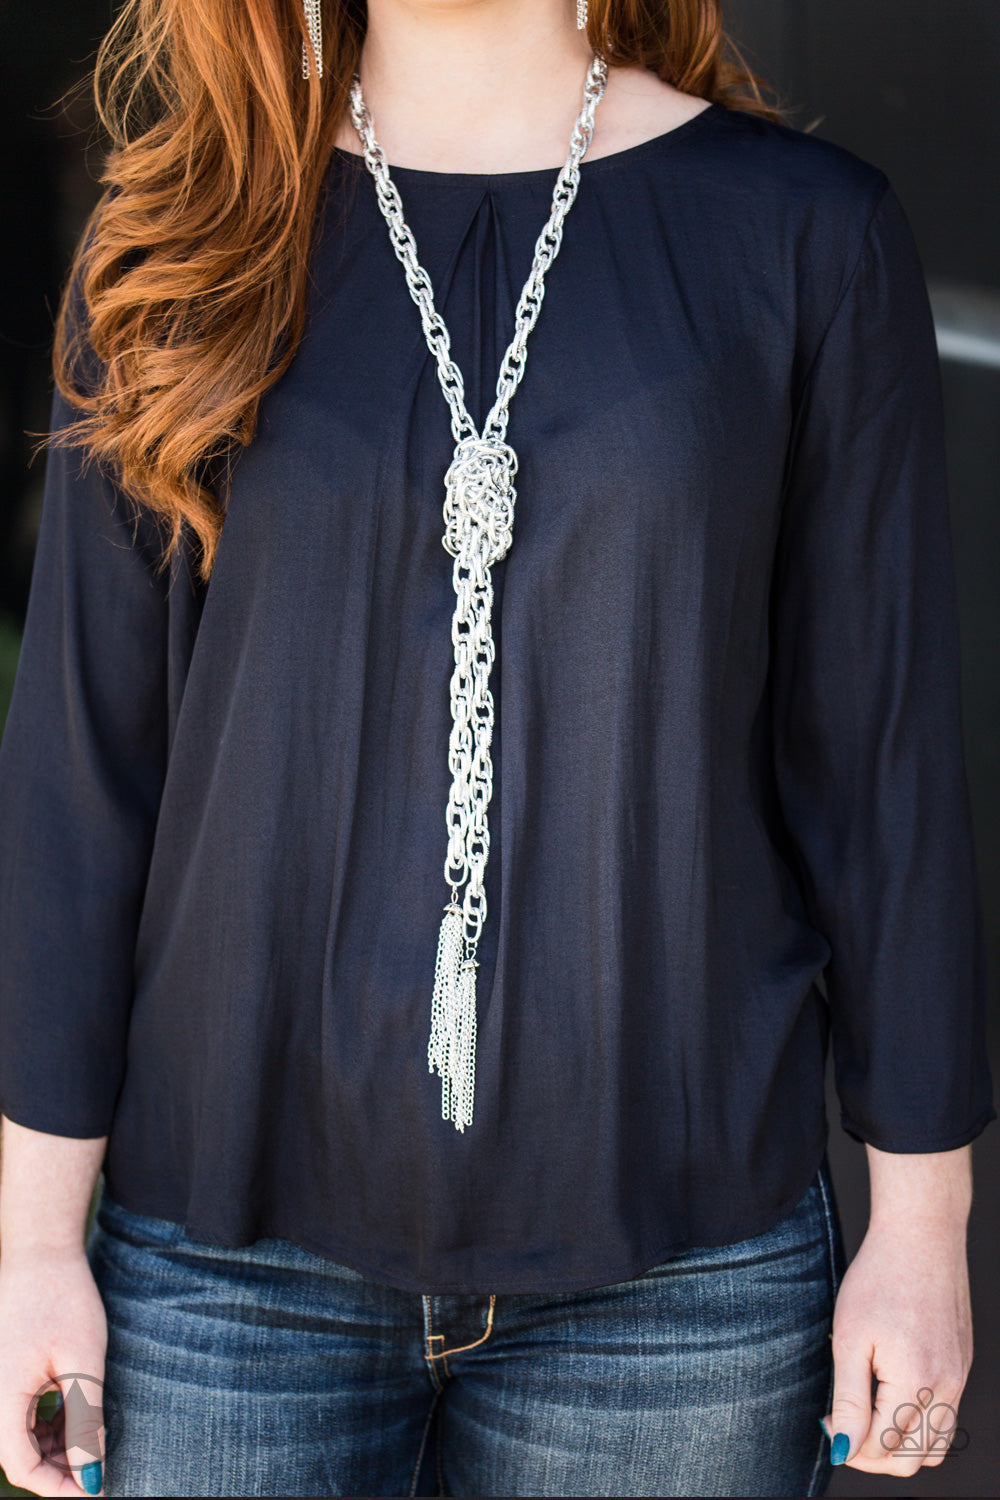 SCARFed for Attention/ Silver Necklace - Jo Glam Boutique